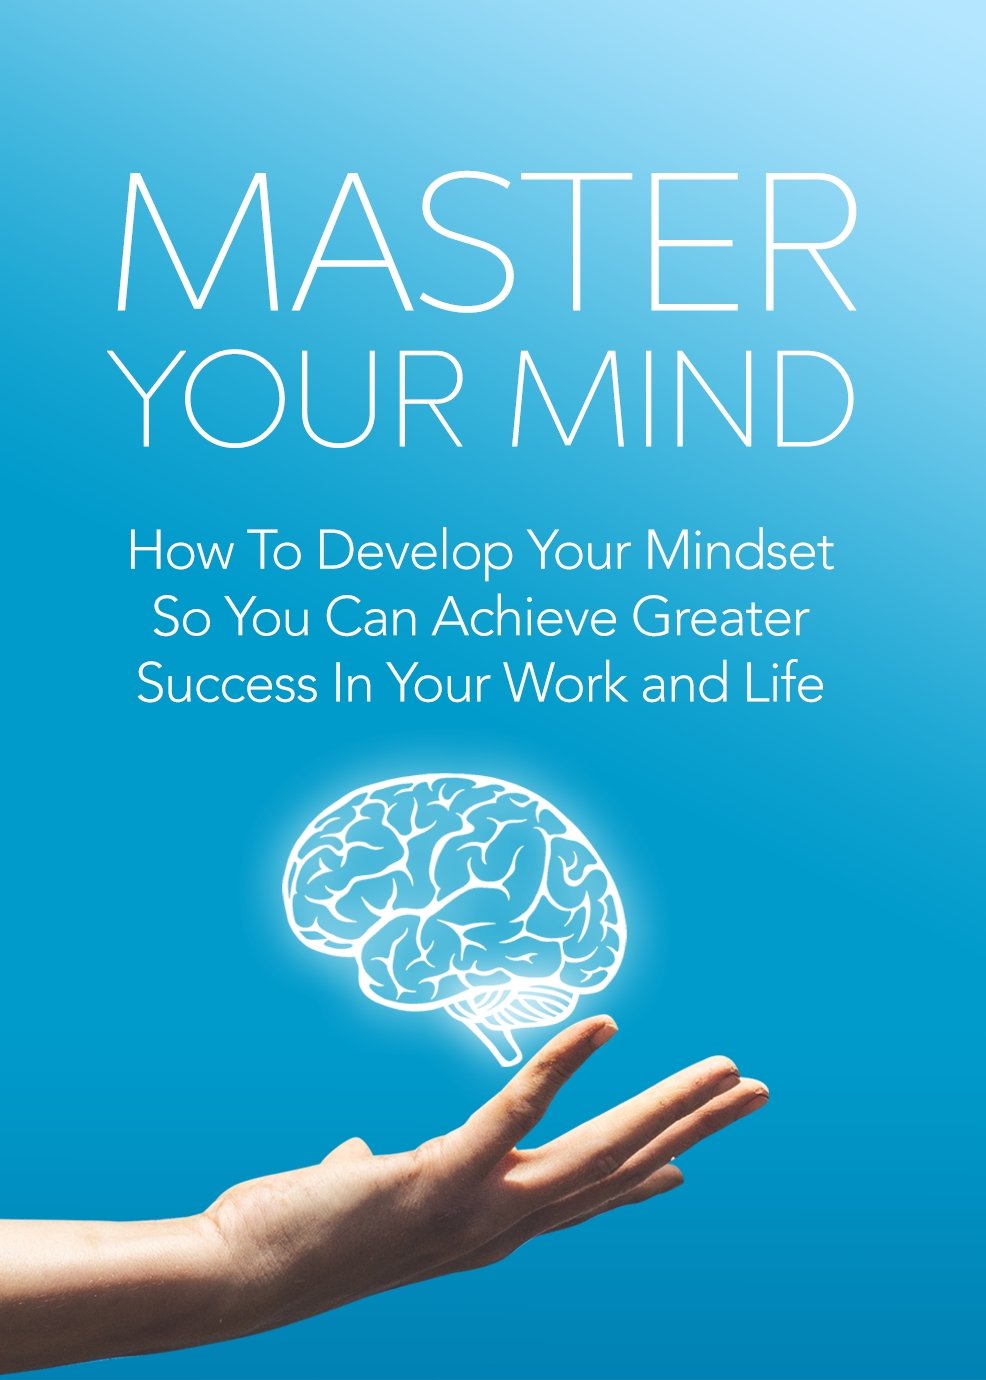 Master Your Mind (How To Develop Your Mindset So You Can Achieve Greater Success In Your Work And Life) Ebook's Ebook Image